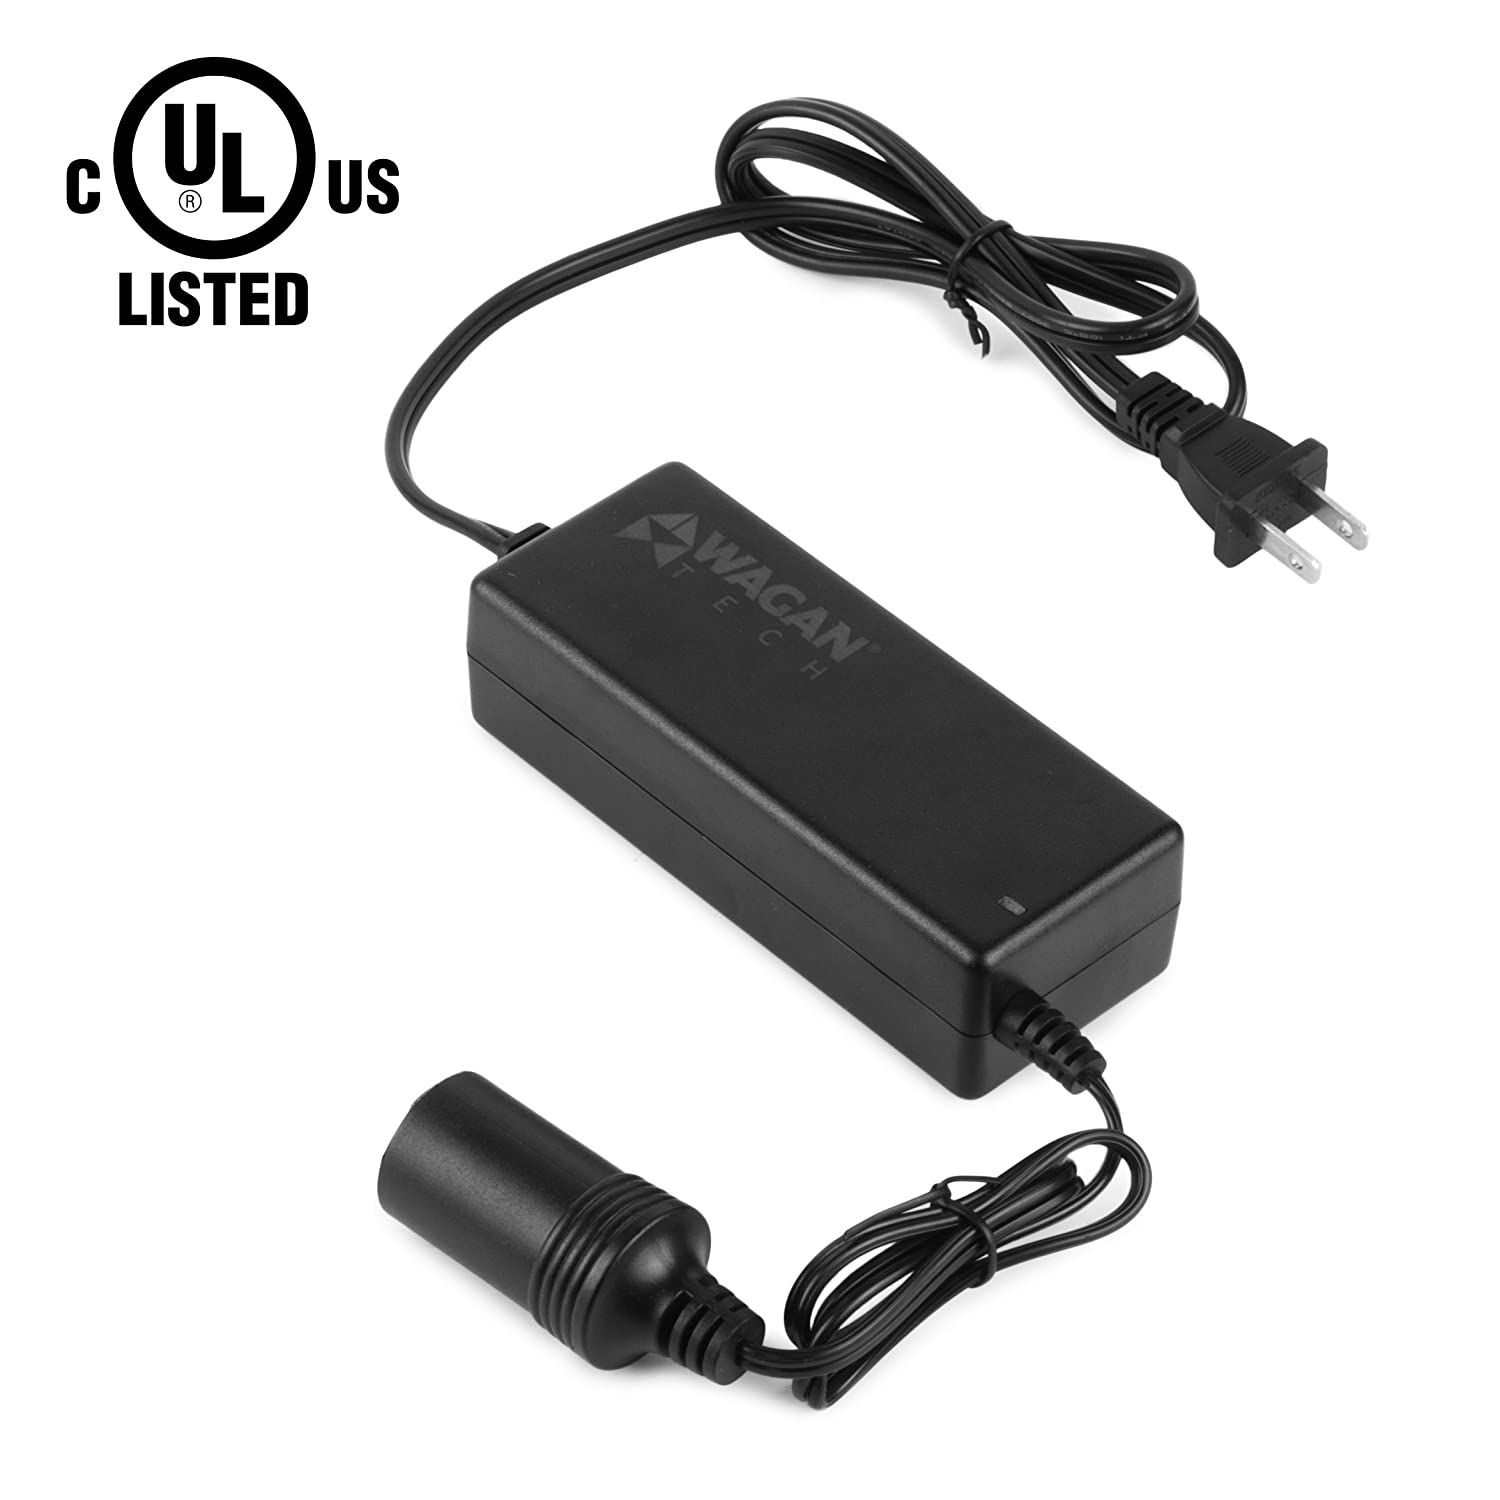 Wagan EL9903-5 amp AC to DC Power Adapter, 5A Power Converter, Converts 110V AC to 12V DC, Car Cigarette Lighter Socket, UL Listed